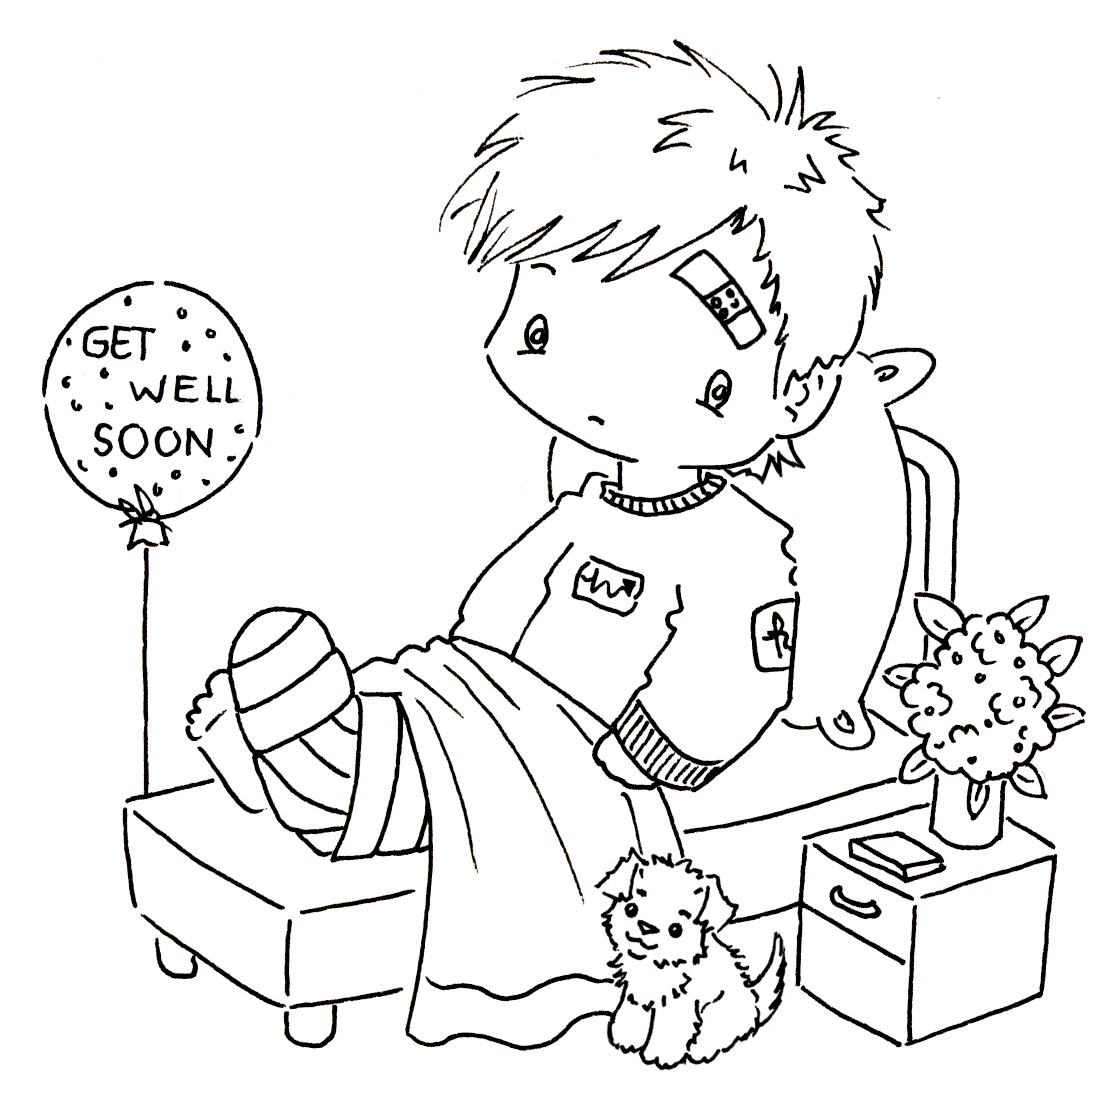 Free Printable Get Well Cards To Color - Stwbowlfest - Free Printable Get Well Cards To Color